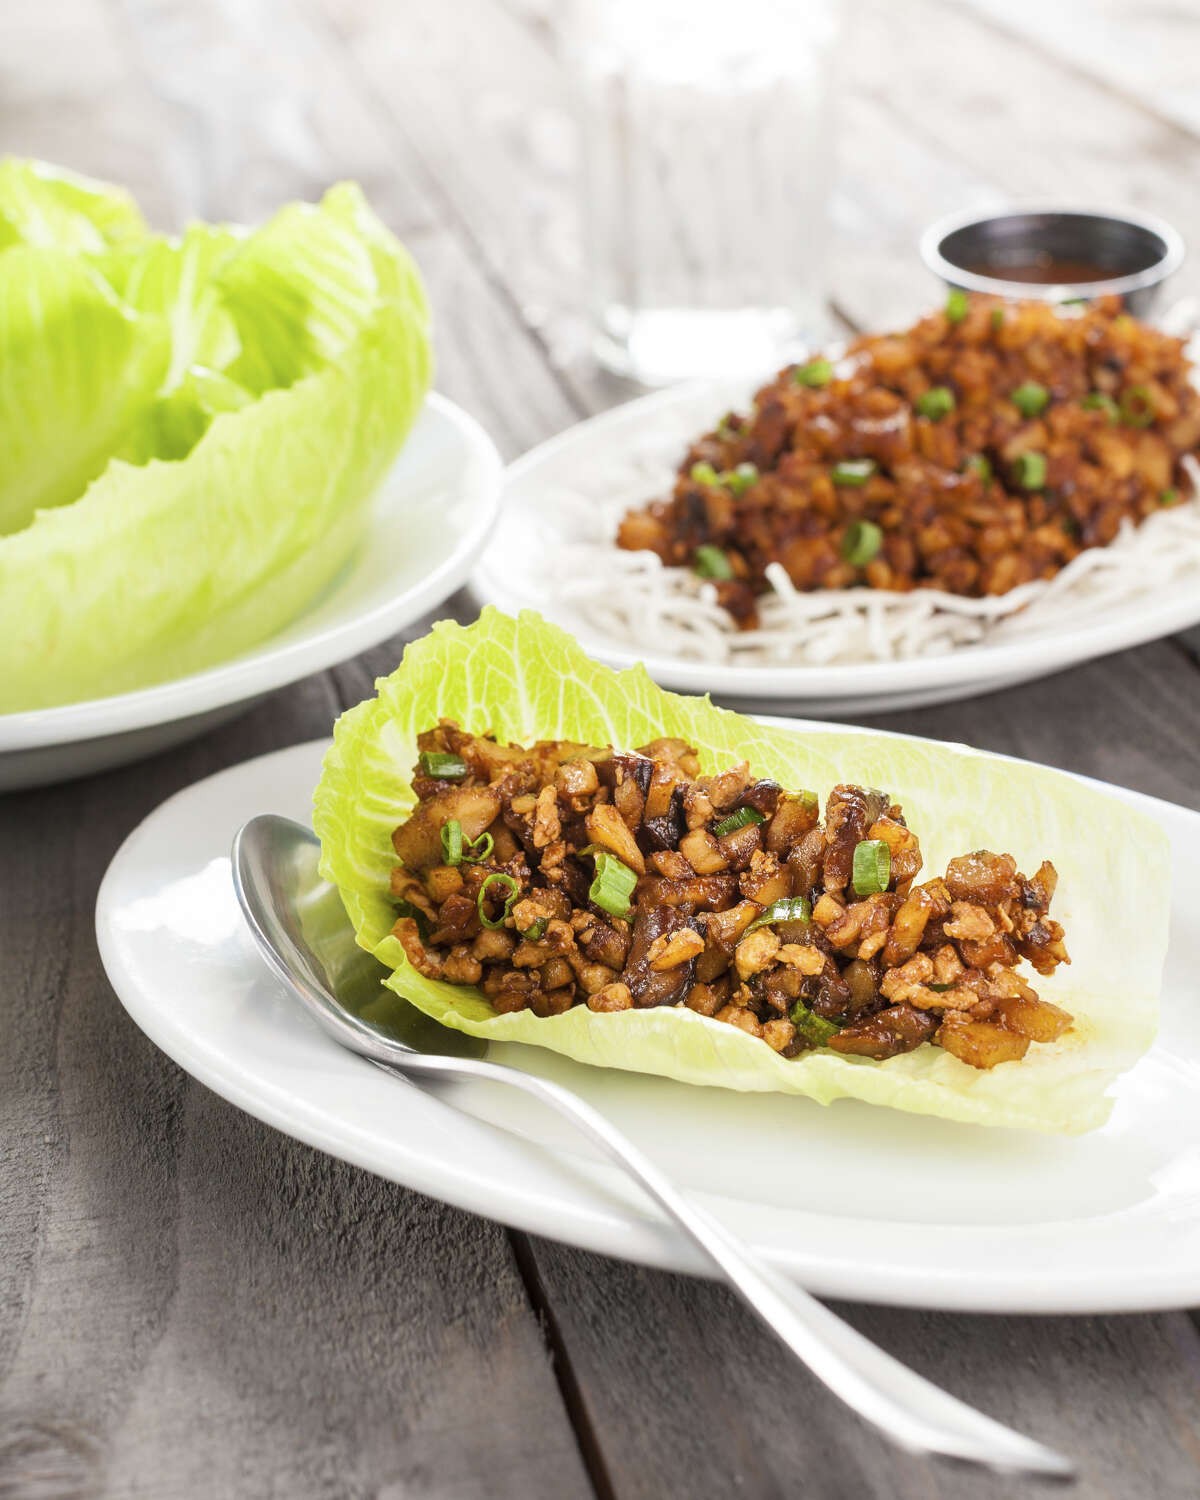 Mama Fu's Asian House opened it second Houston location on Dec. 7 at 12341 FM 1960 Rd W. Shown: Mama Fu's Lettuce Wraps.